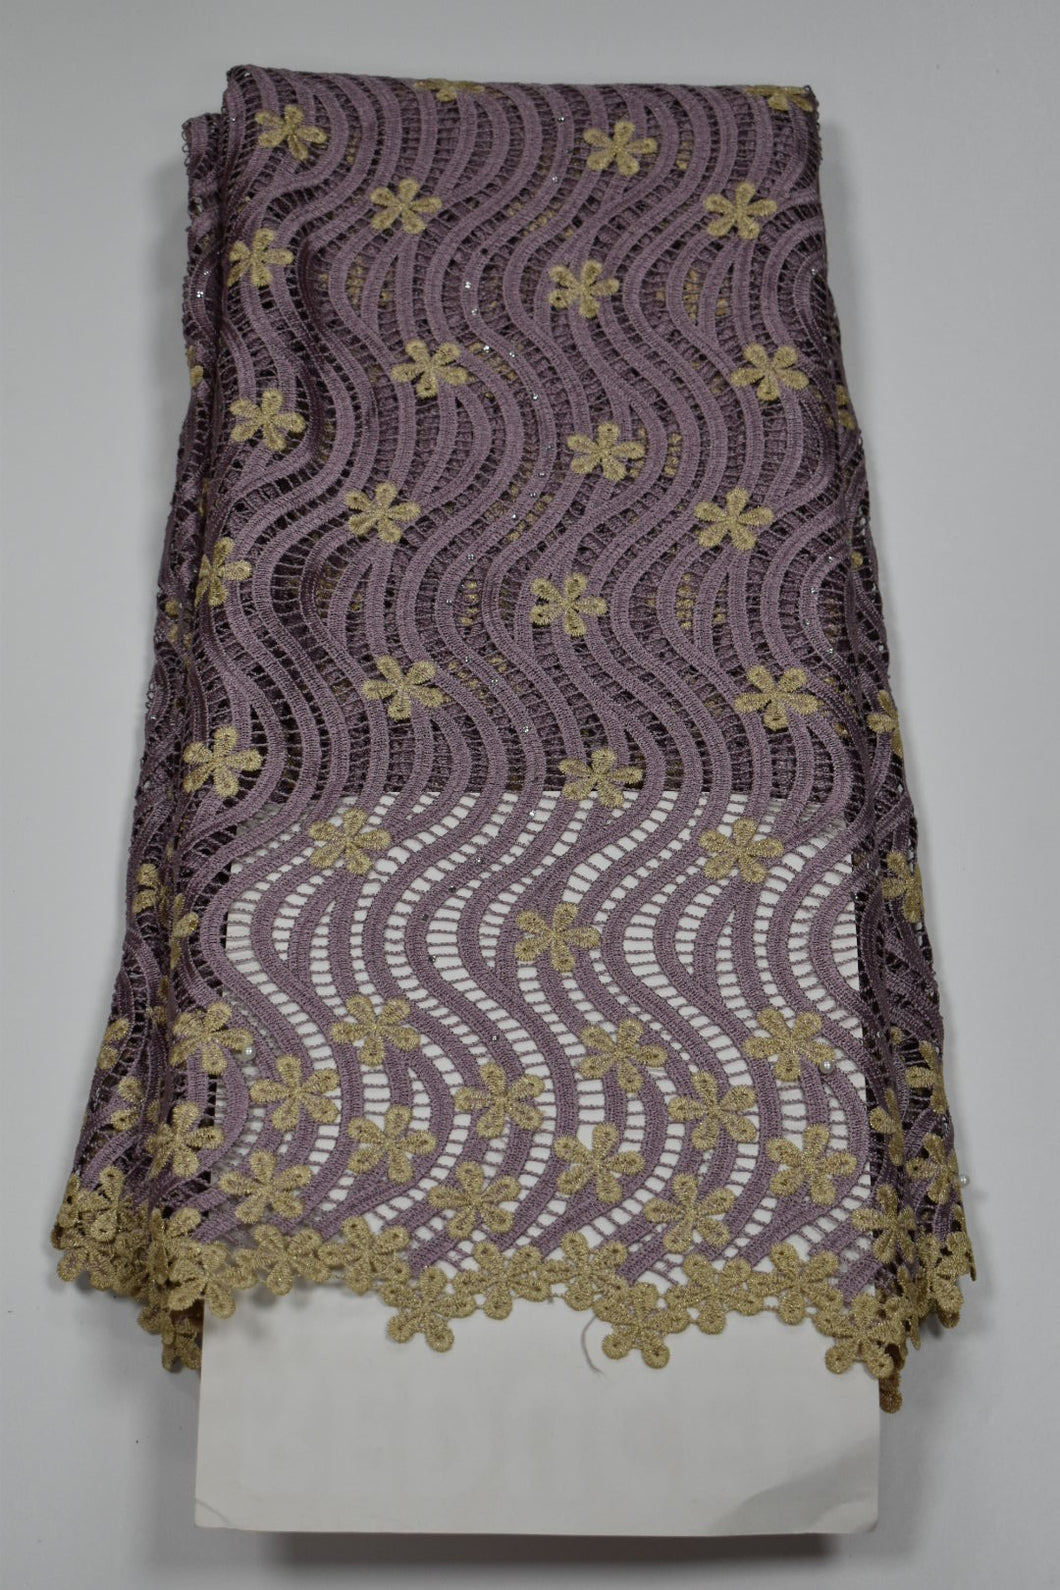 Onion and Gold Cord Lace - 5 Yards